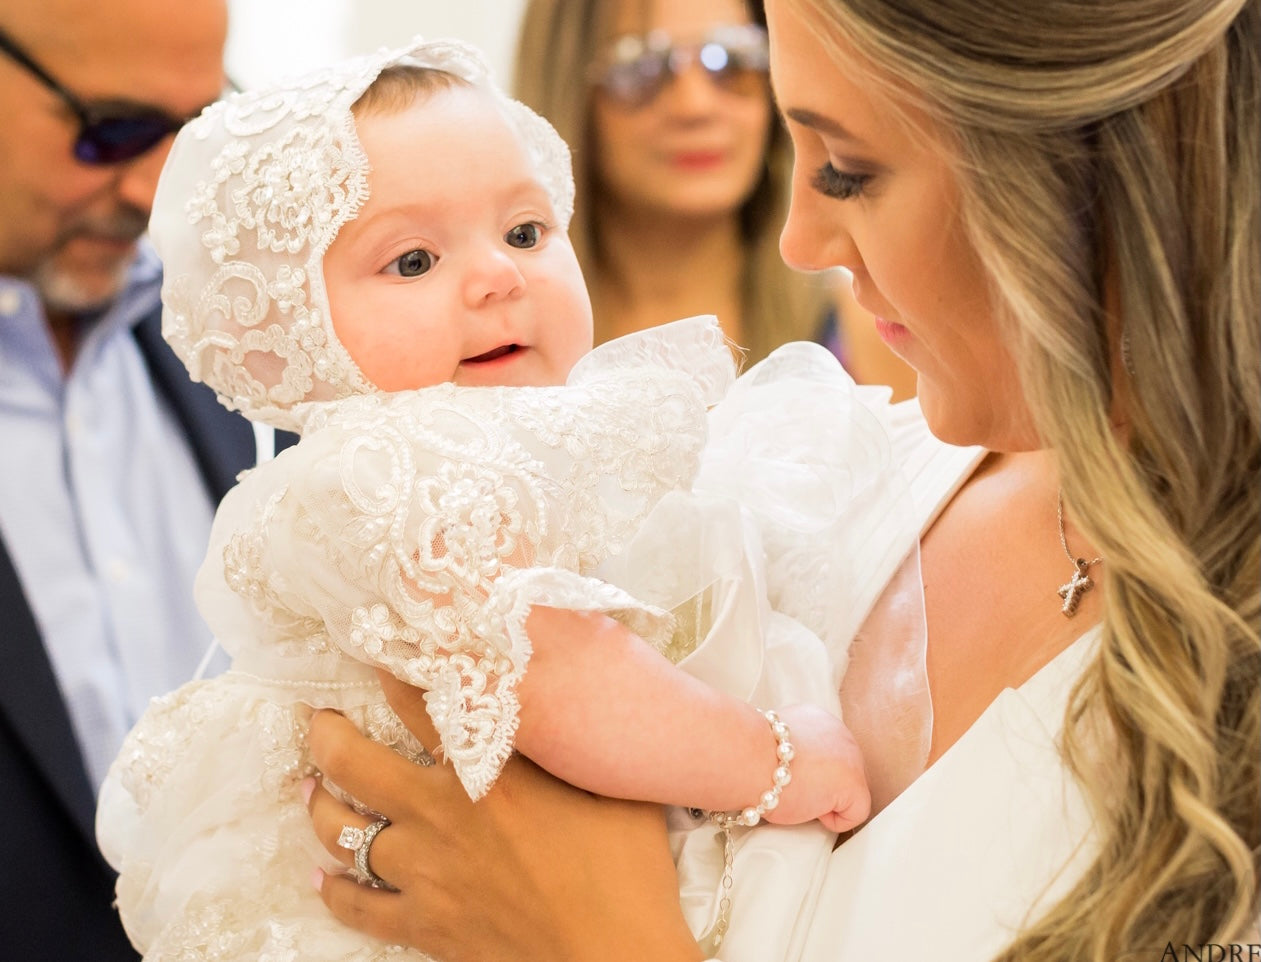 woman holding baby dressed in christie lauren baptism gown